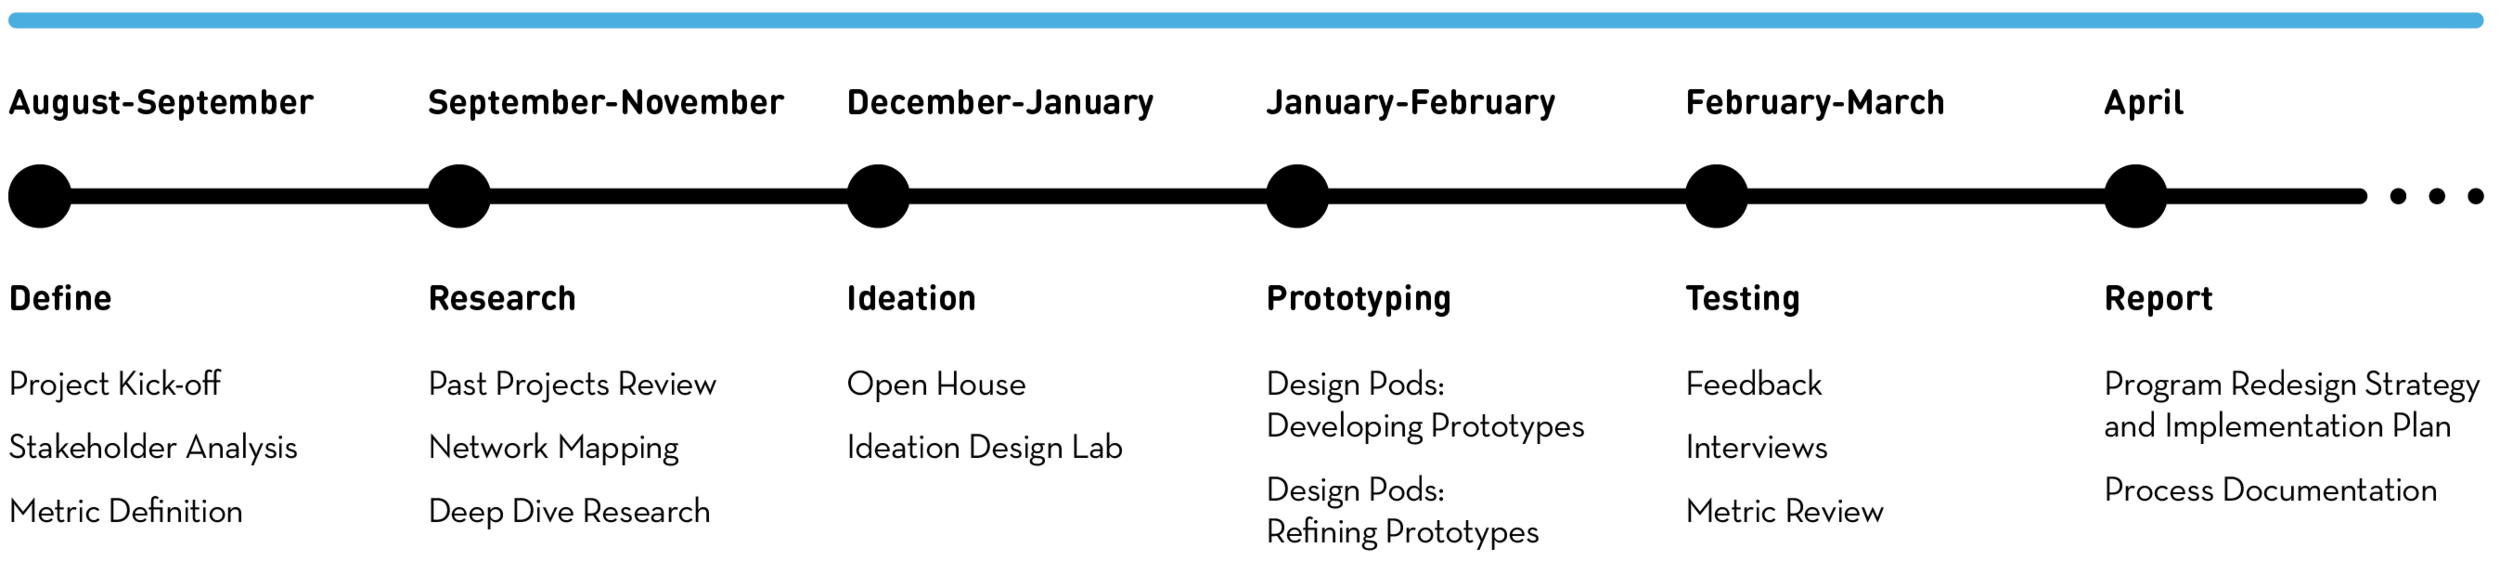 A high level timeline of the project.